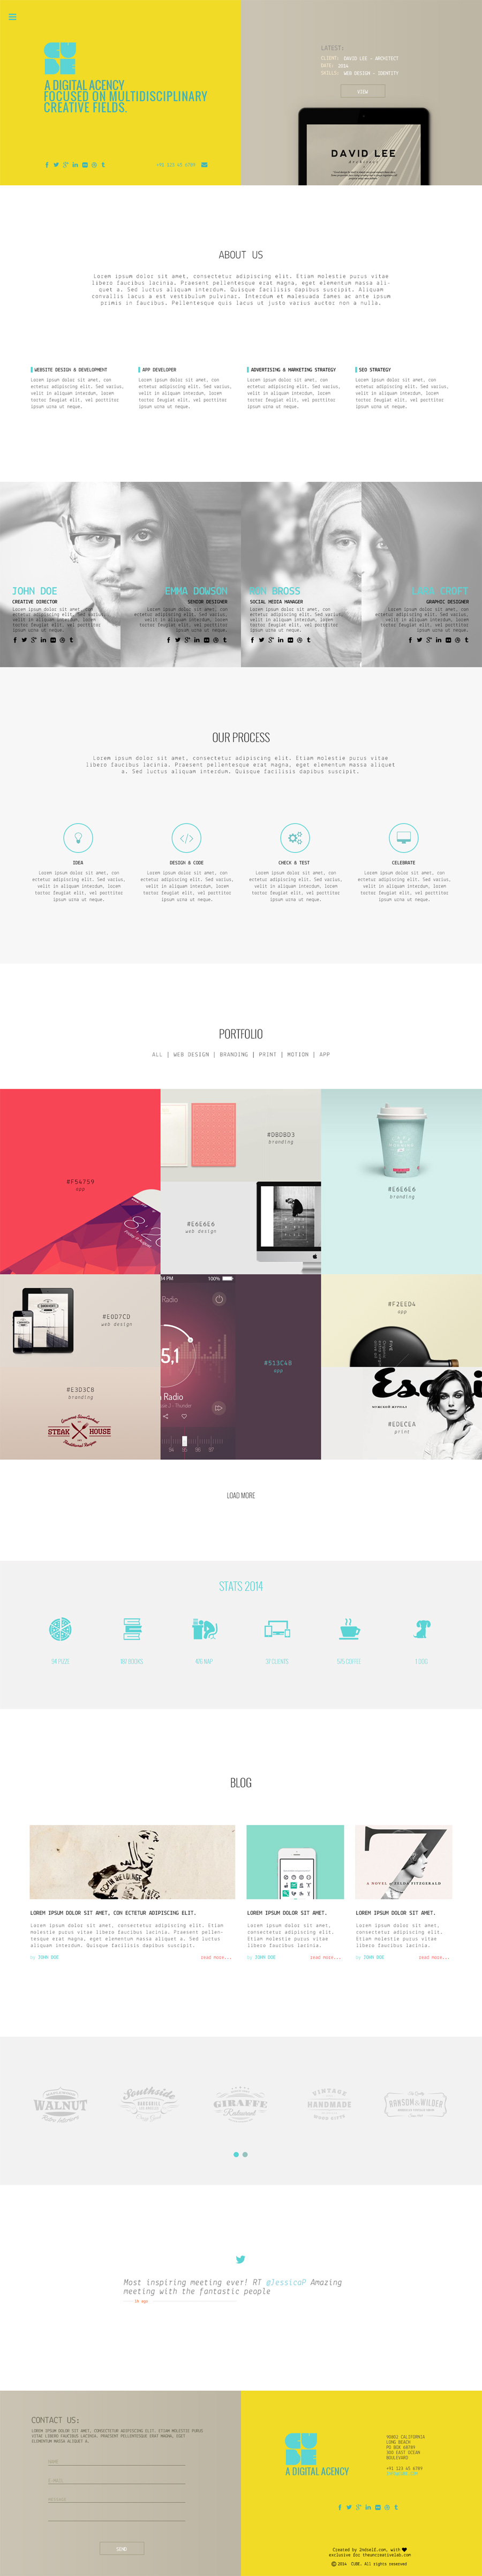 CUBE - Free .PSD Template